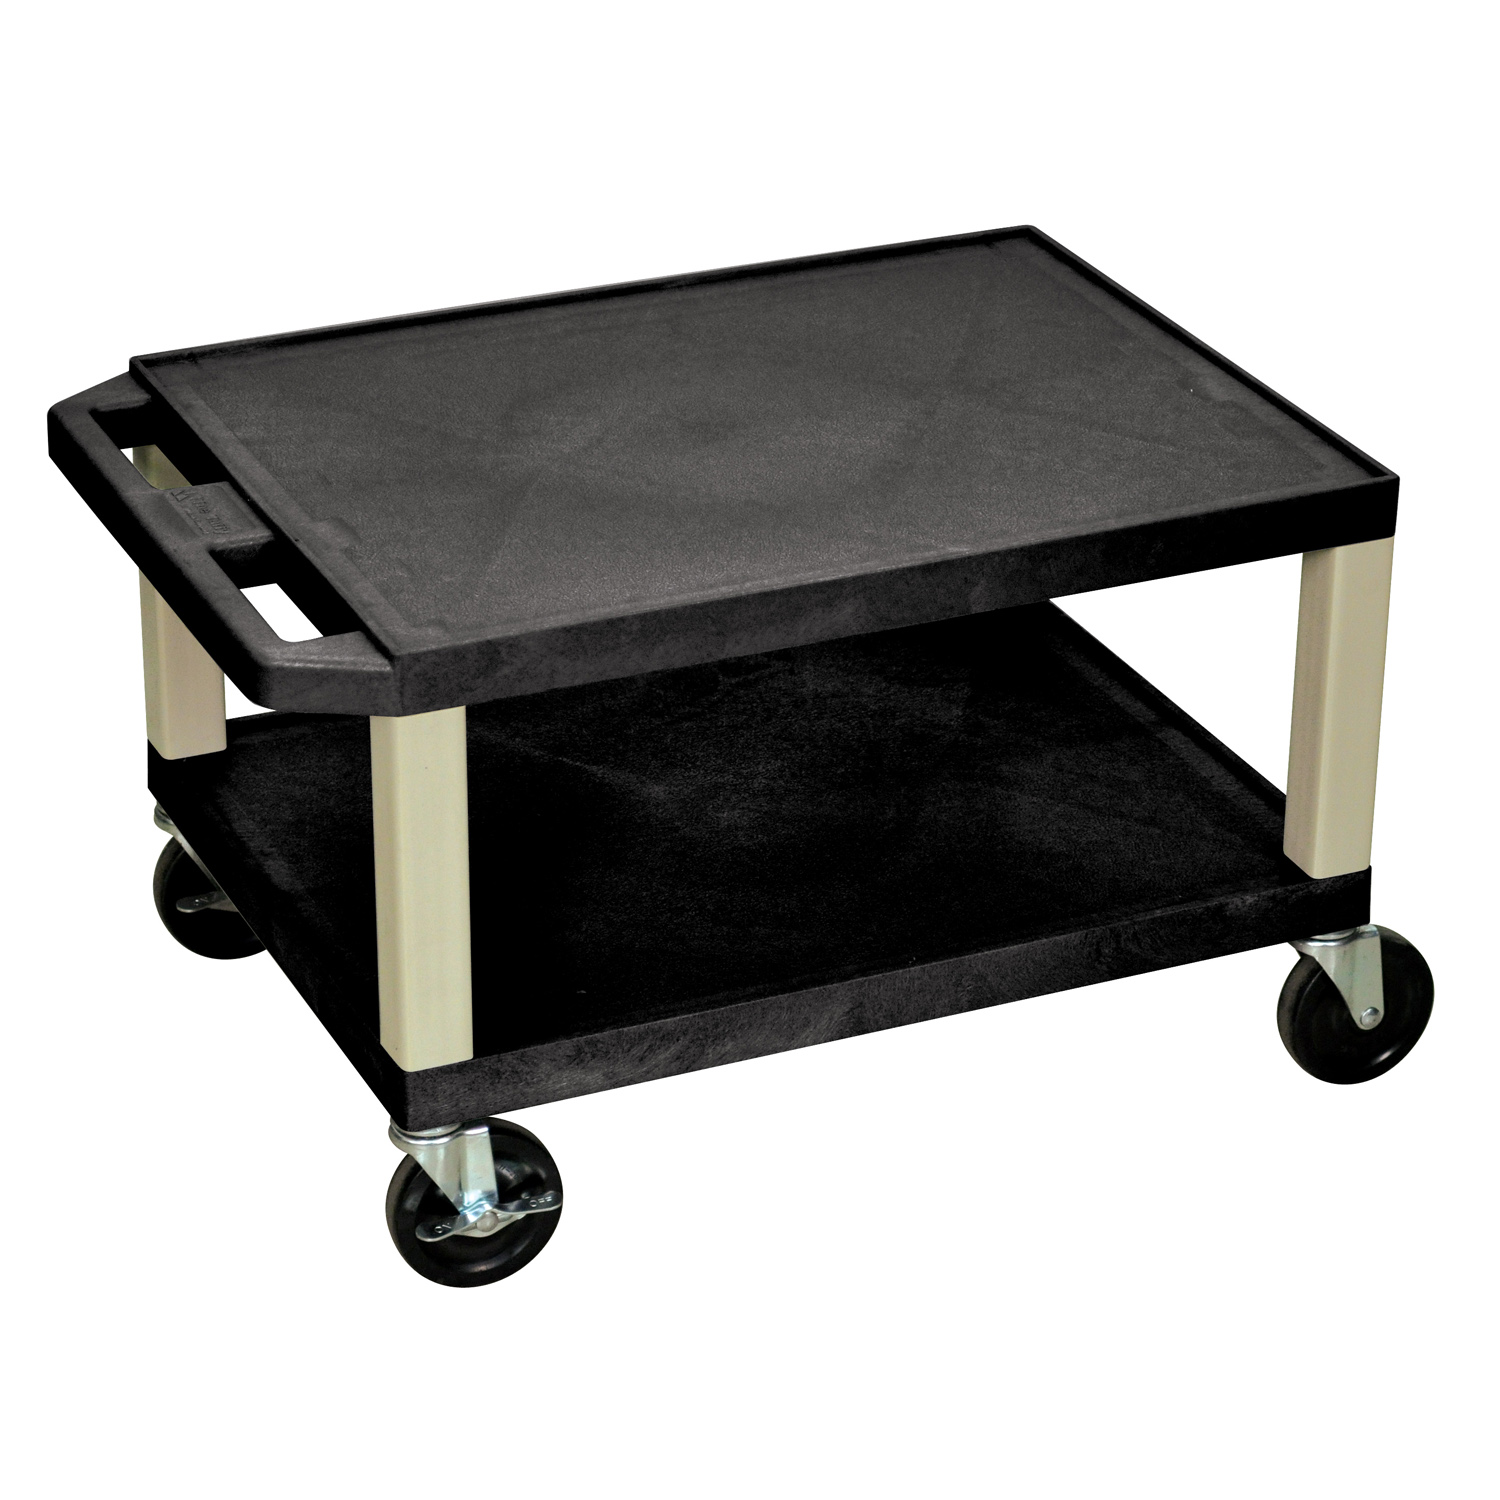 H.Wilson Mobile Portable Metal Presentation Lectern Podium Rolling Cart With Privacy Panel Black